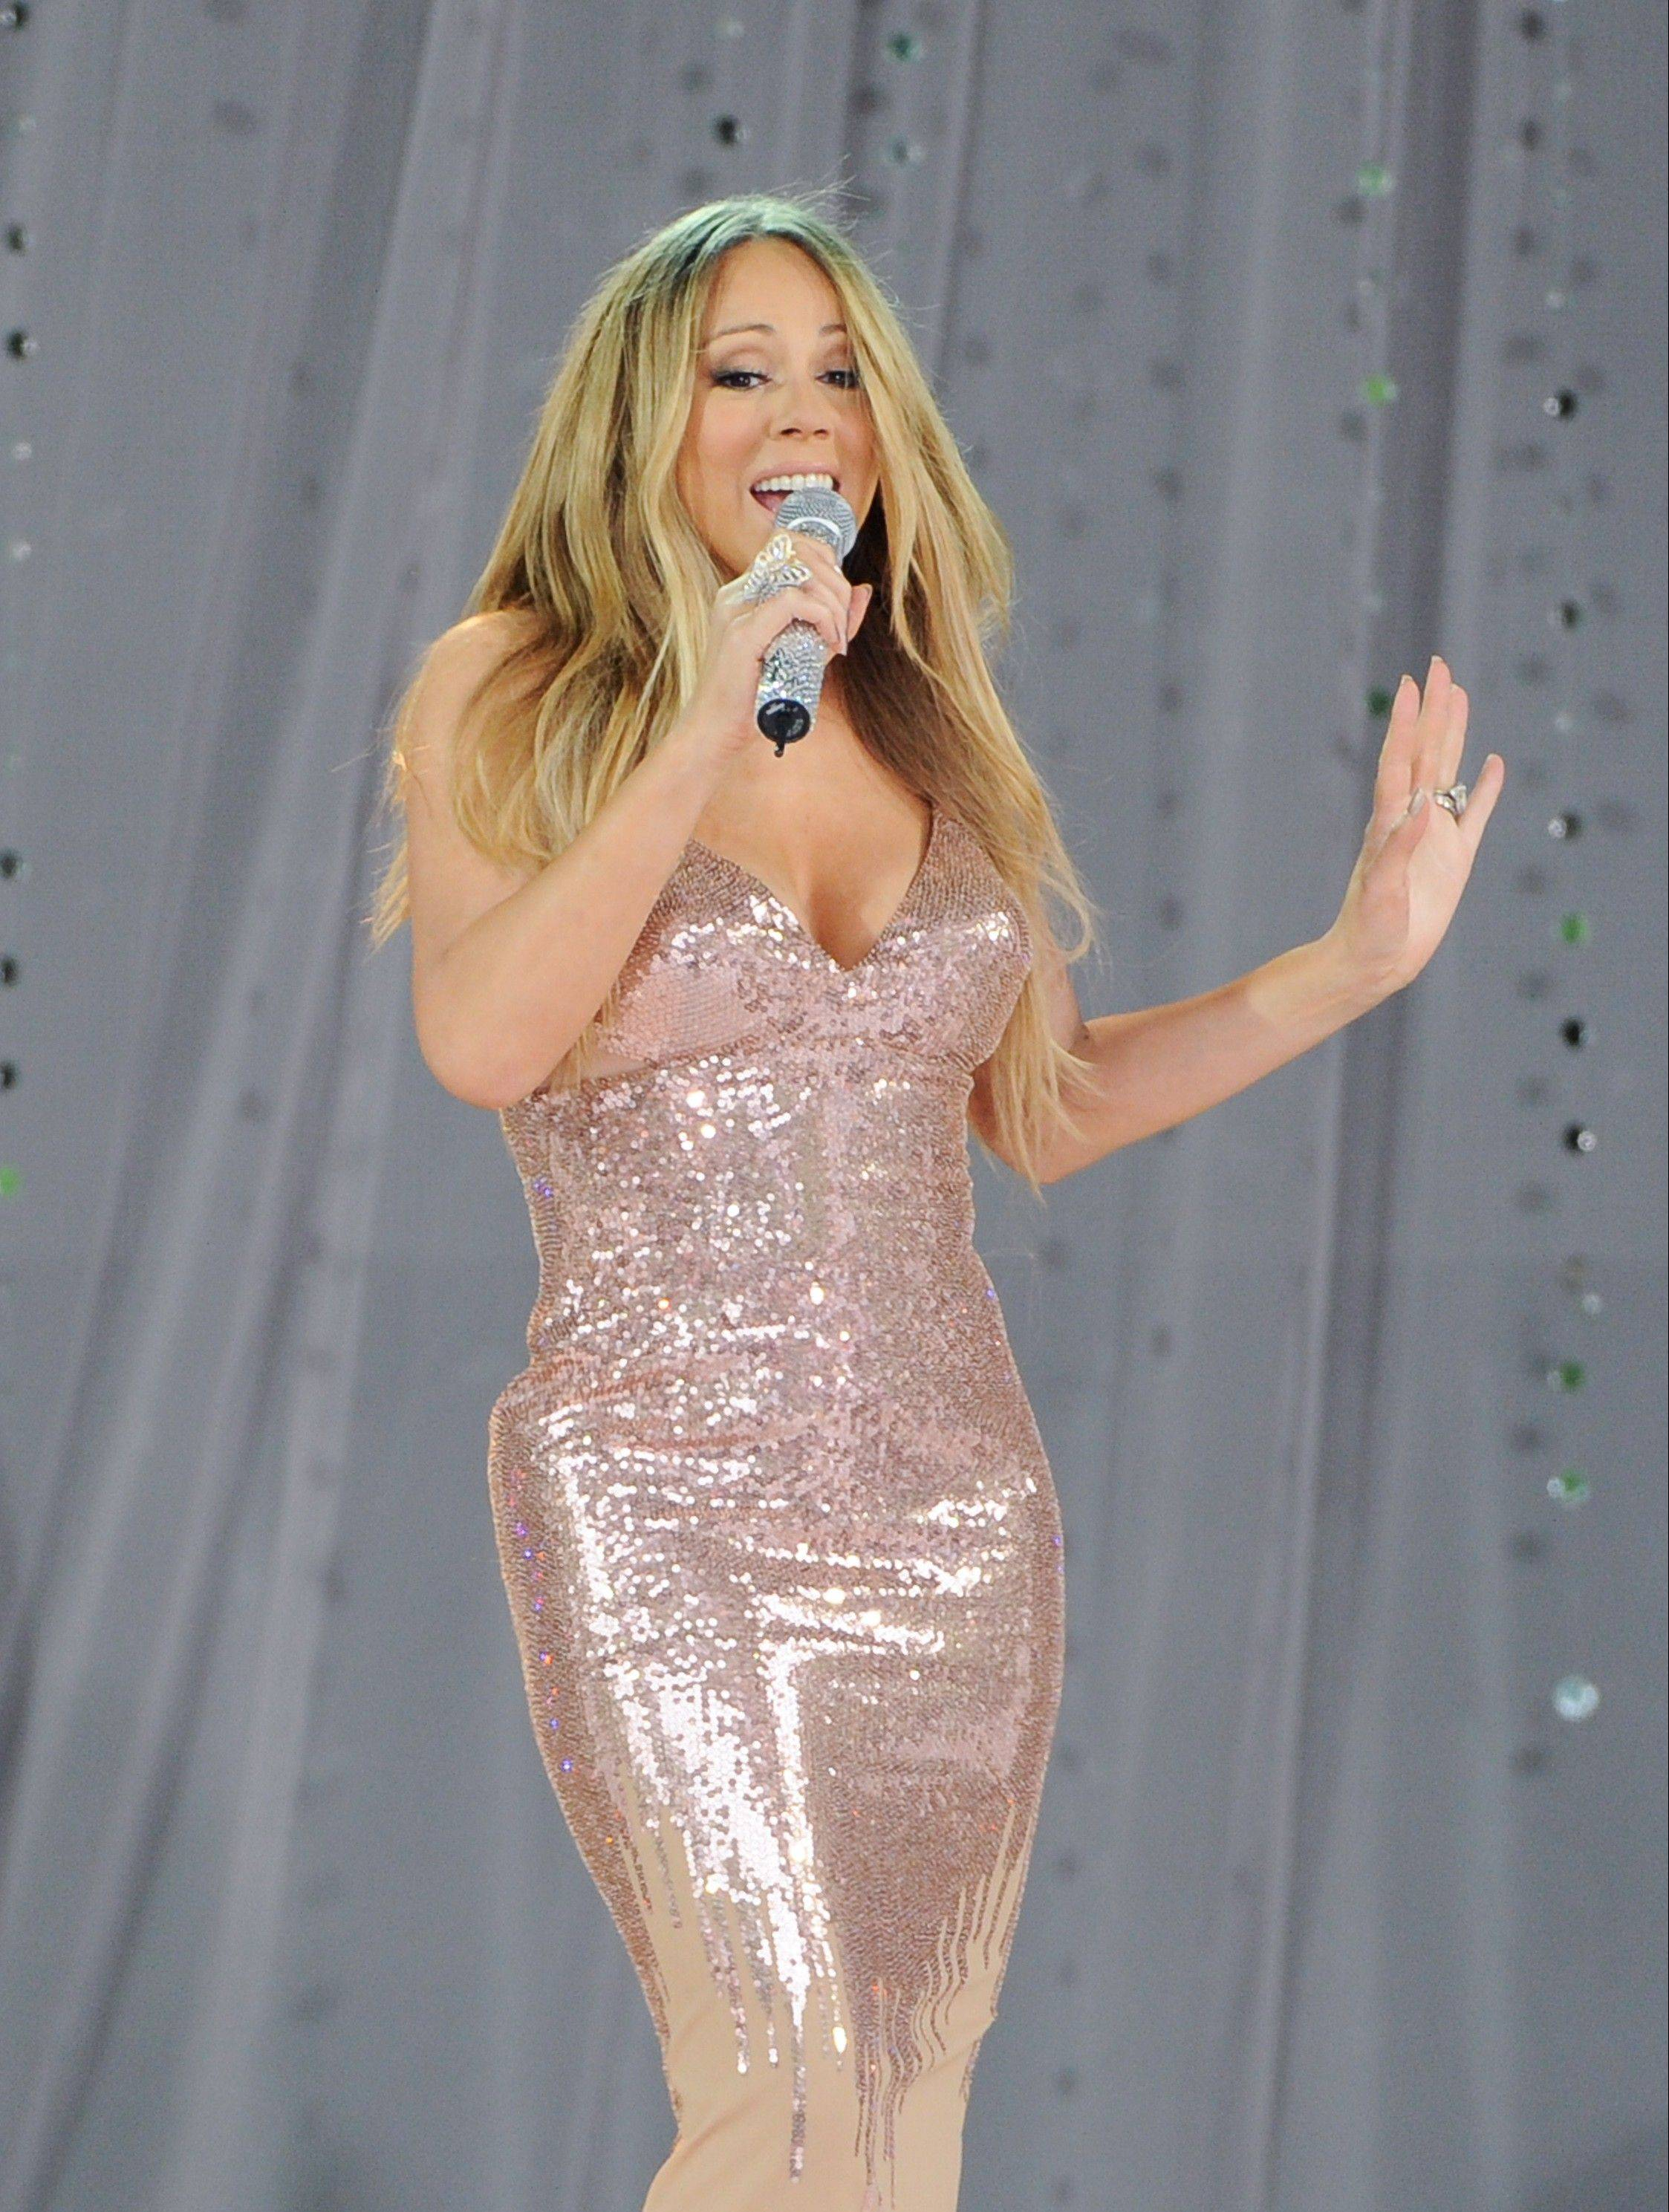 Singer Mariah Carey is in the hospital for a shoulder injury. The pop star's representative says the singer went to the hospital late Sunday after injuring her shoulder while filming a music video.